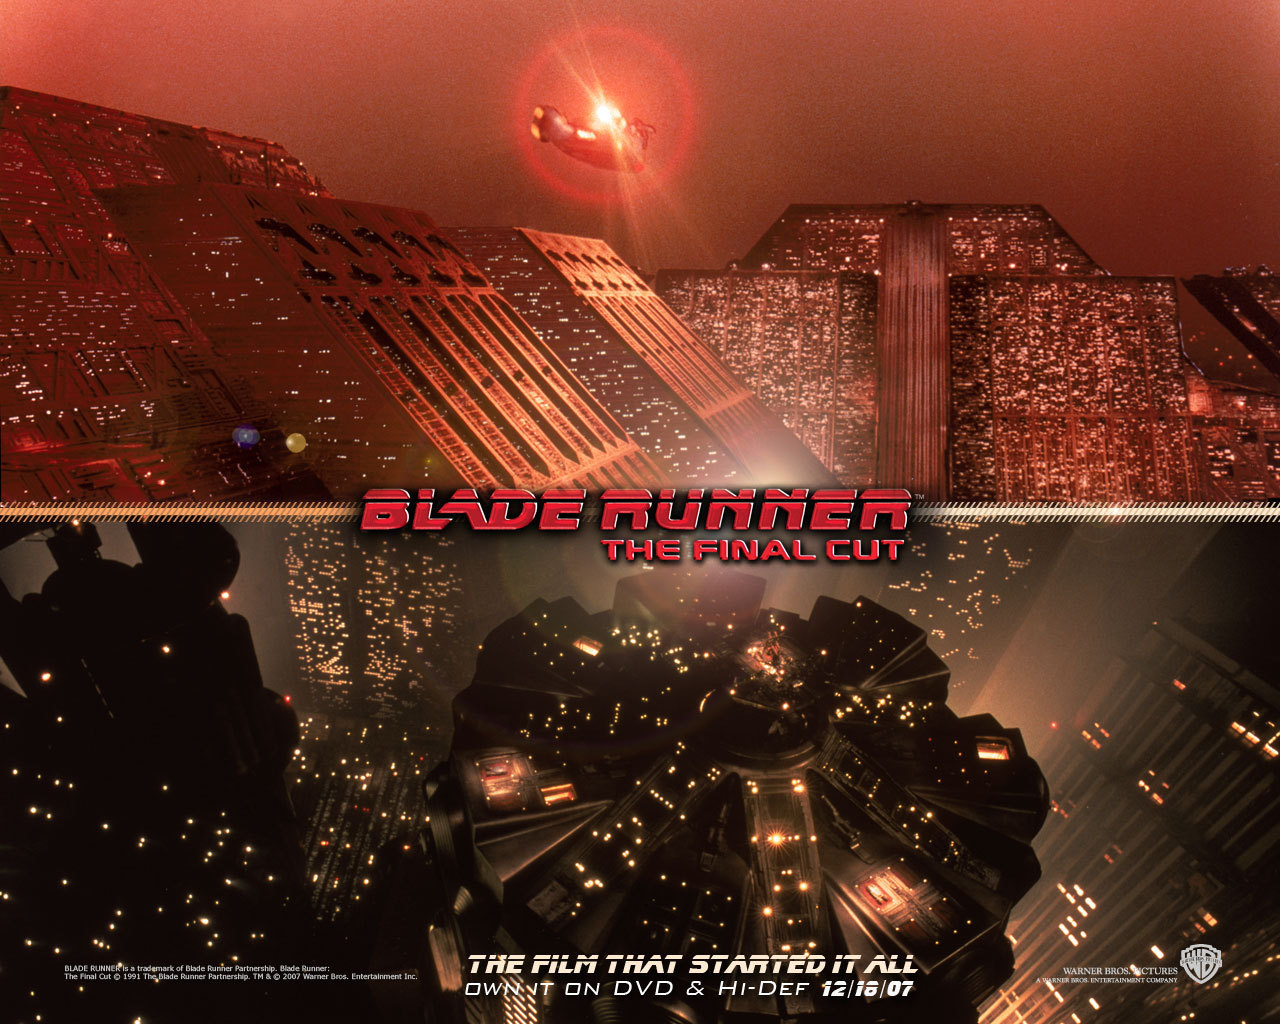 Official Blade Runner Wallpaper   Blade Runner Wallpaper 8207467 1280x1024